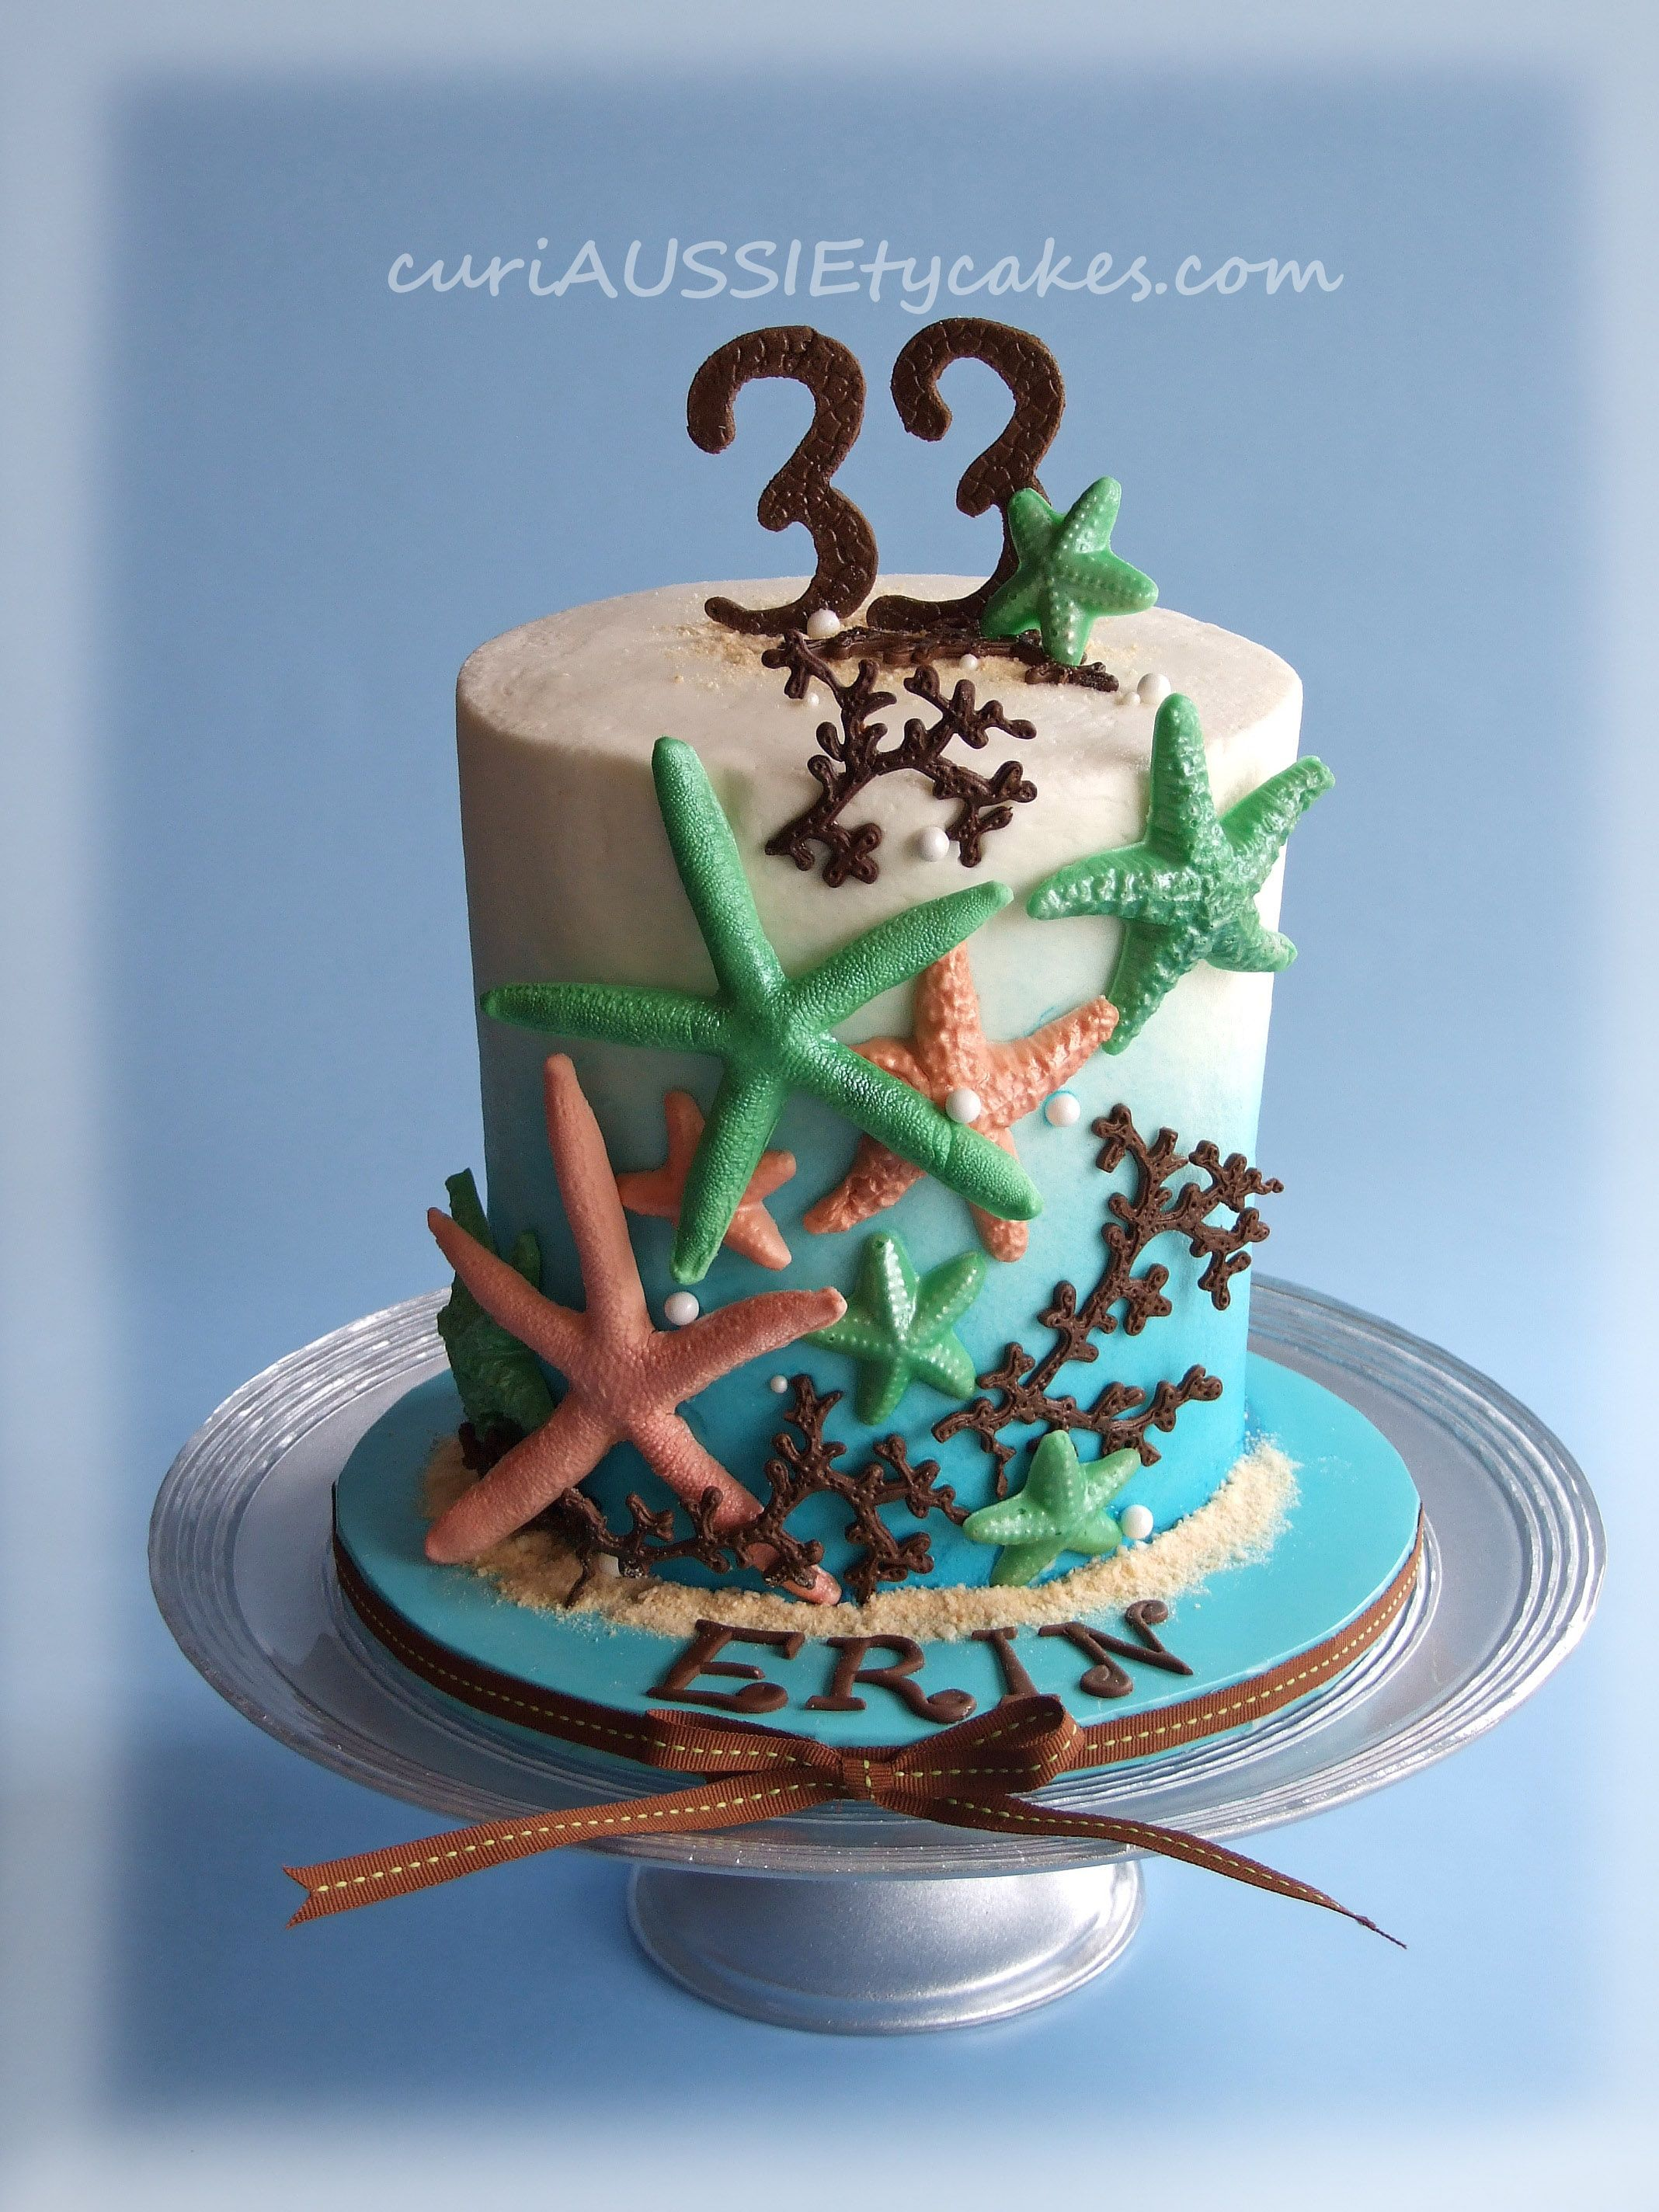 Stupendous Starfish Birthday Cake This Cake Is A 6 Round And About 7 1 2 Personalised Birthday Cards Akebfashionlily Jamesorg